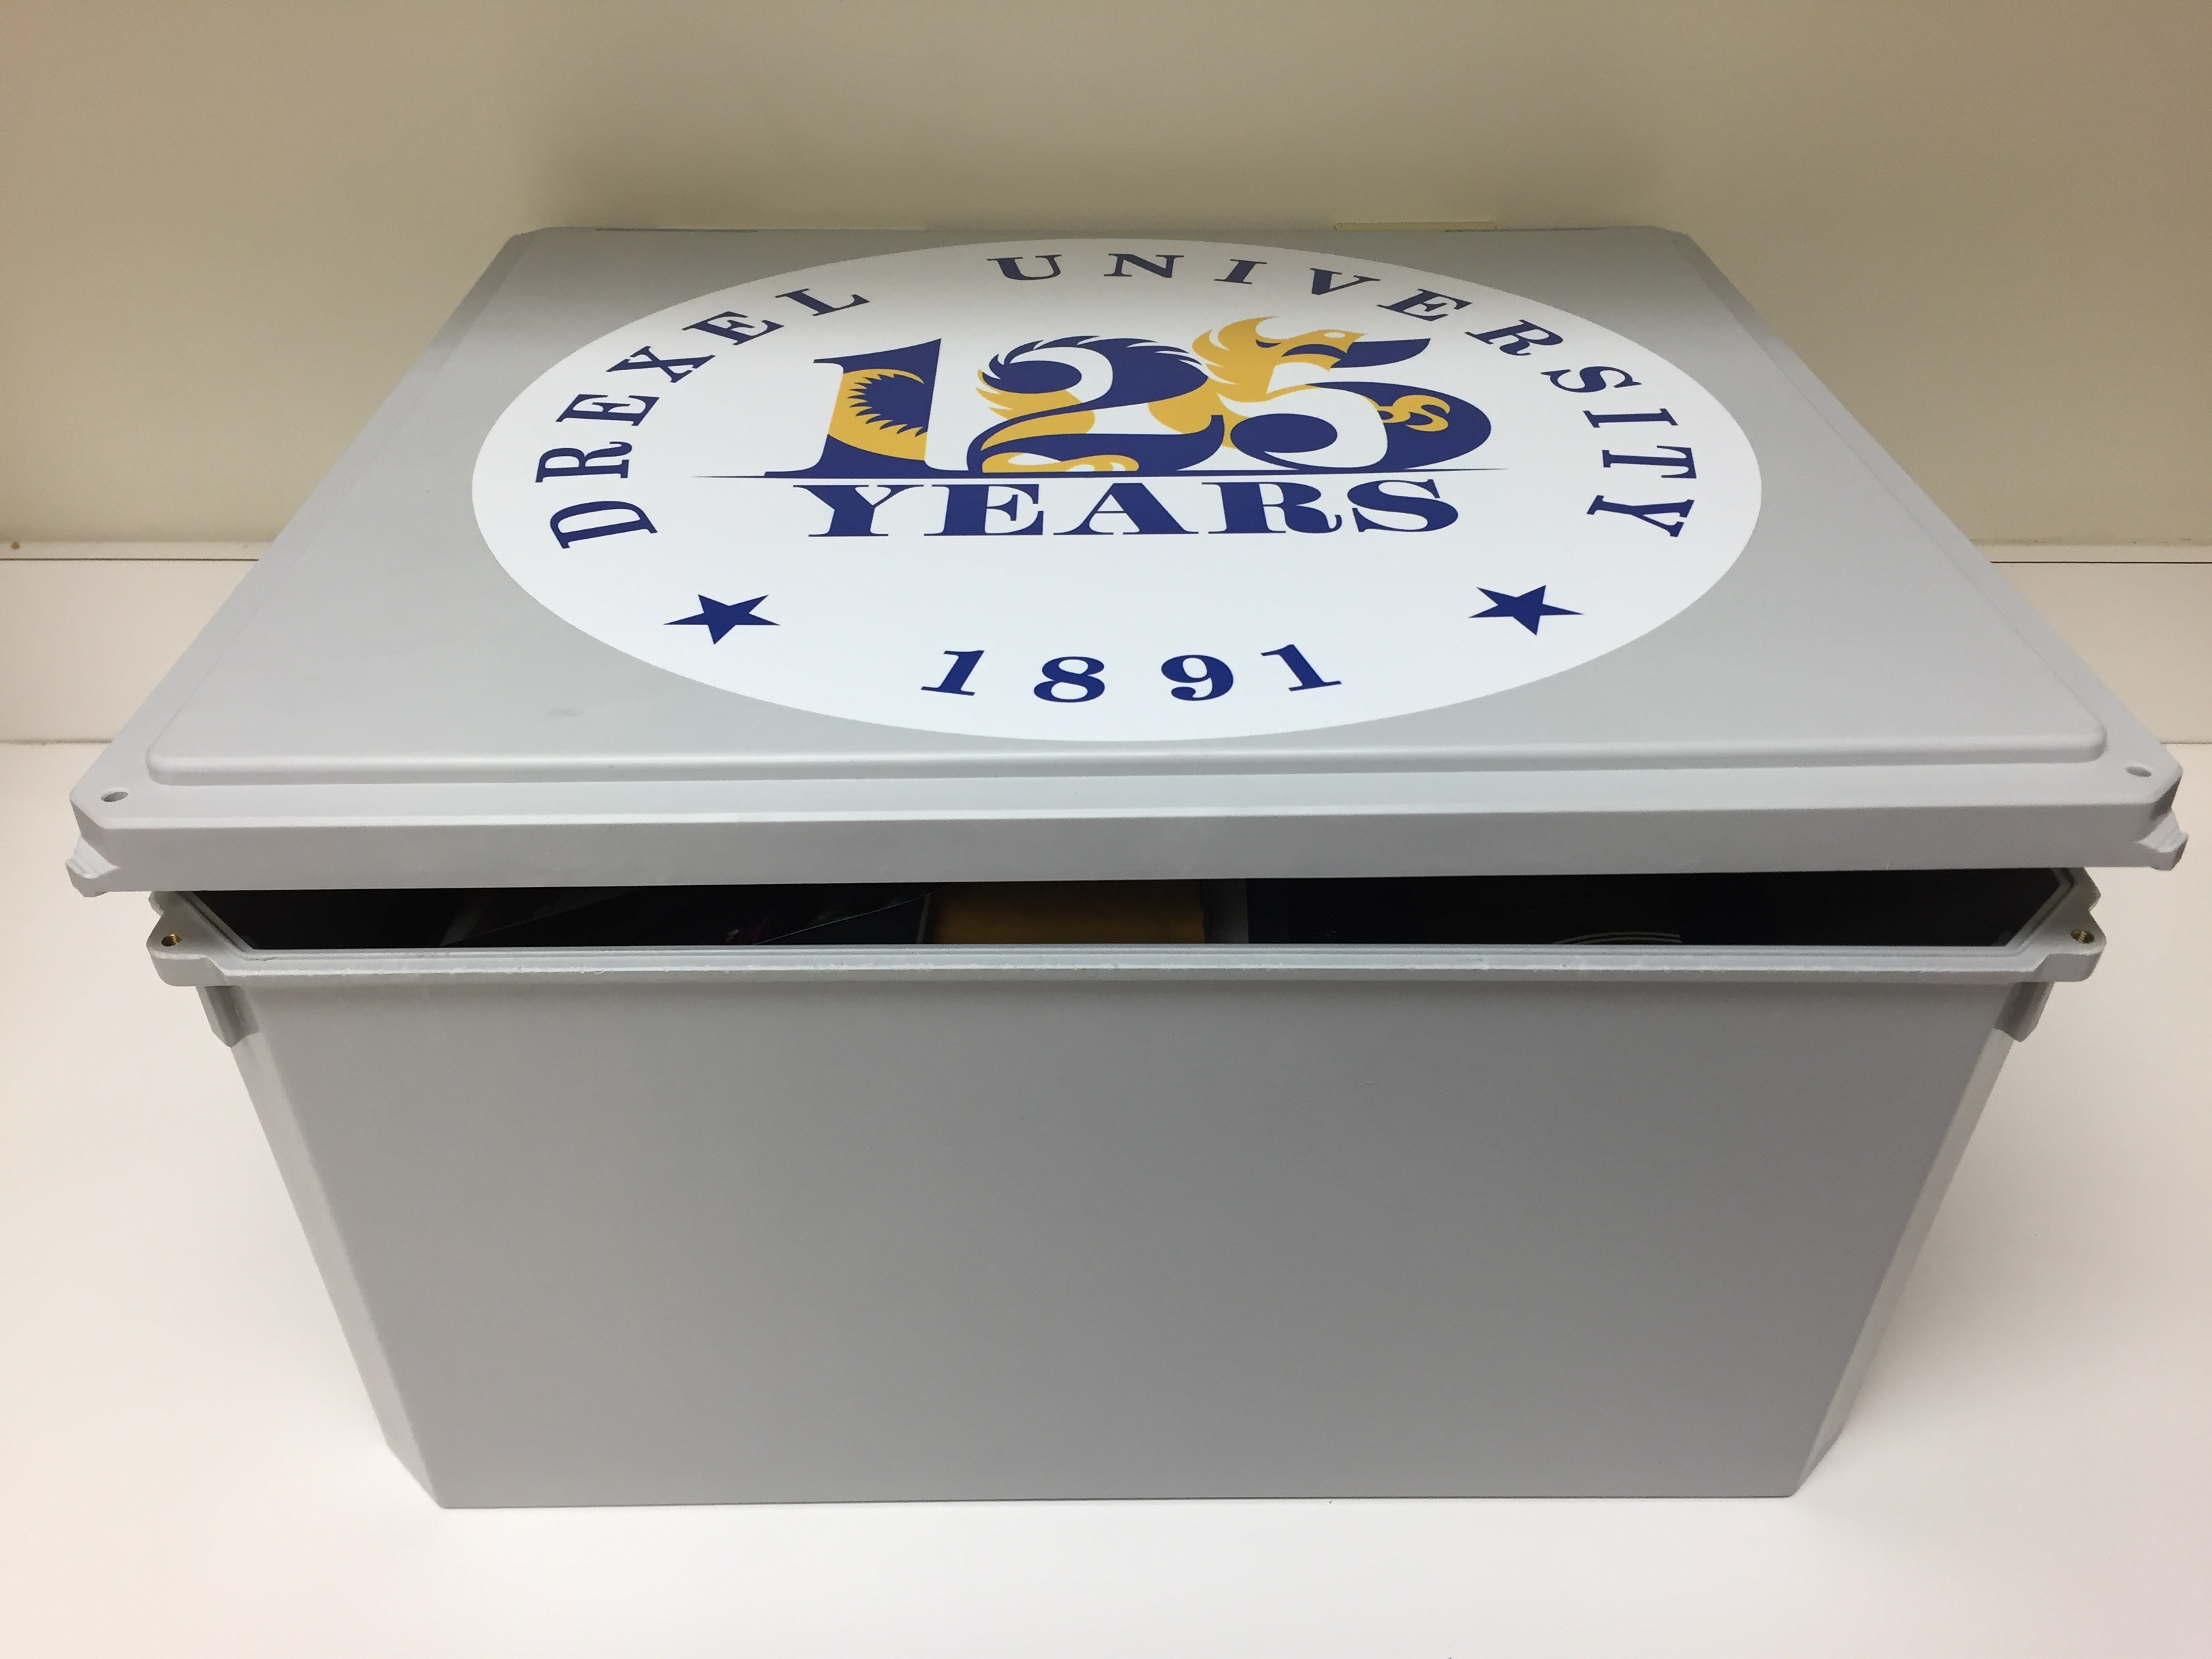 The official time capsule that will be buried for Drexel's 125th anniversary.